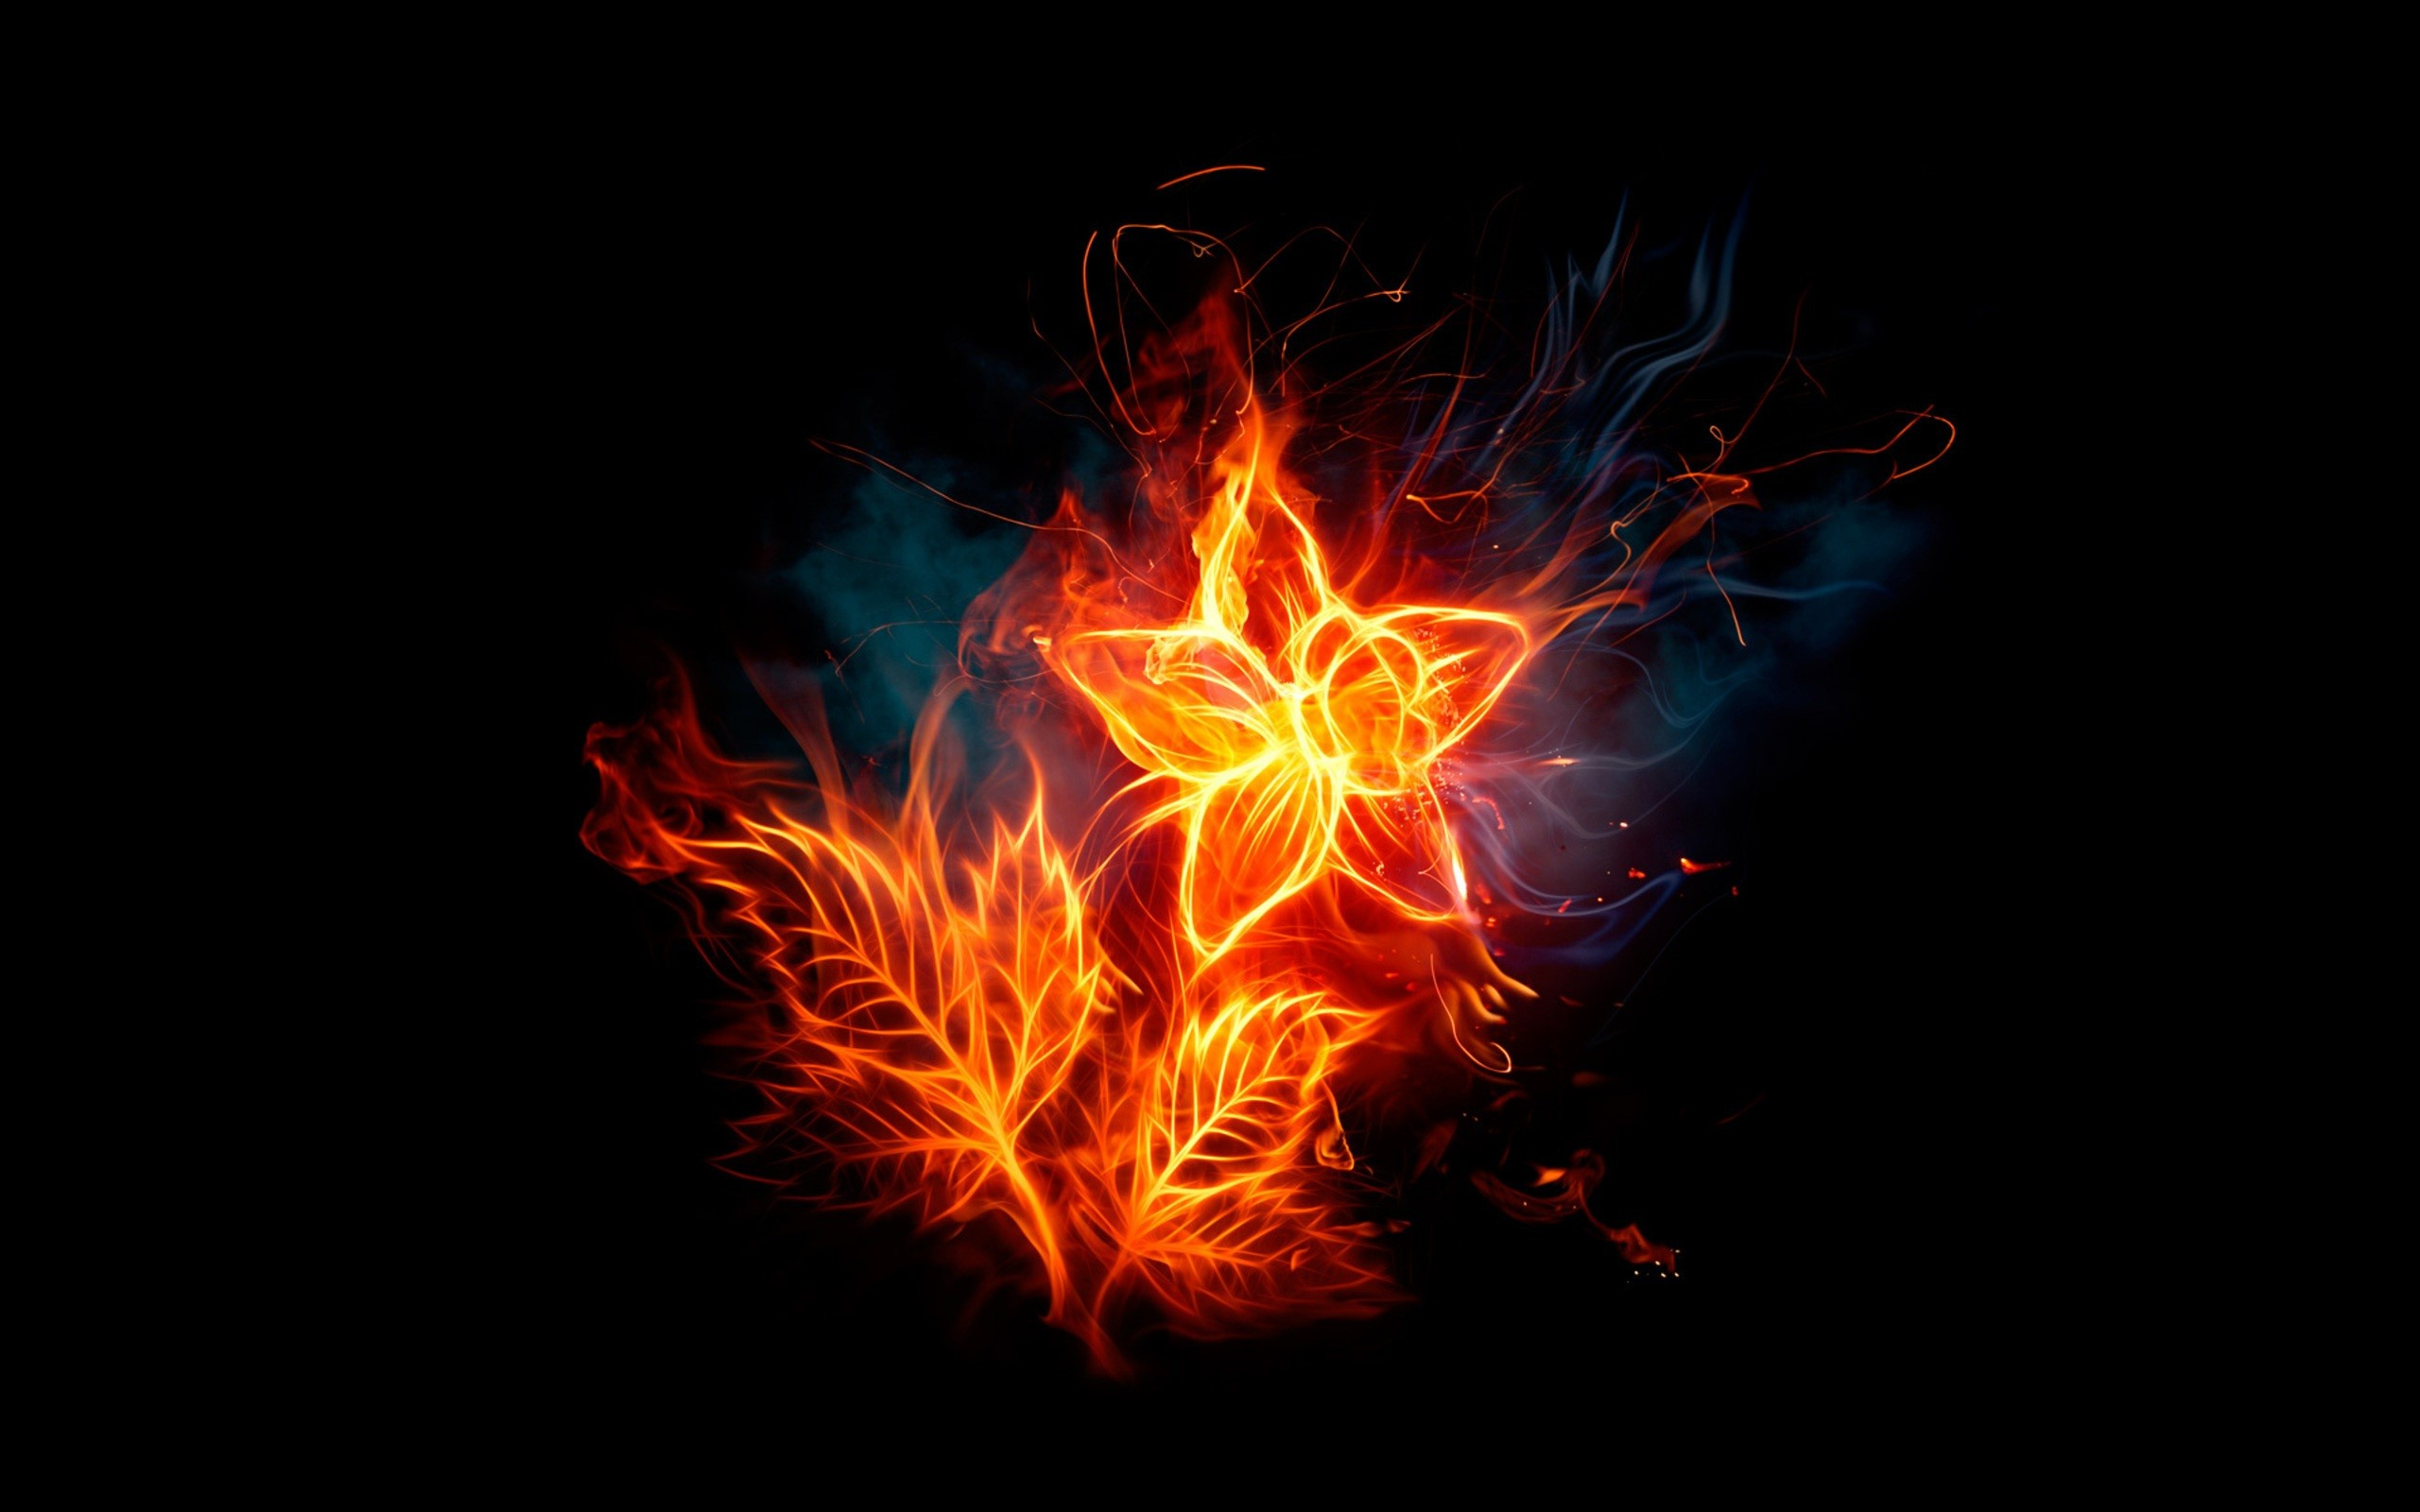 Abstract Wallpaper Fire 2560x1600